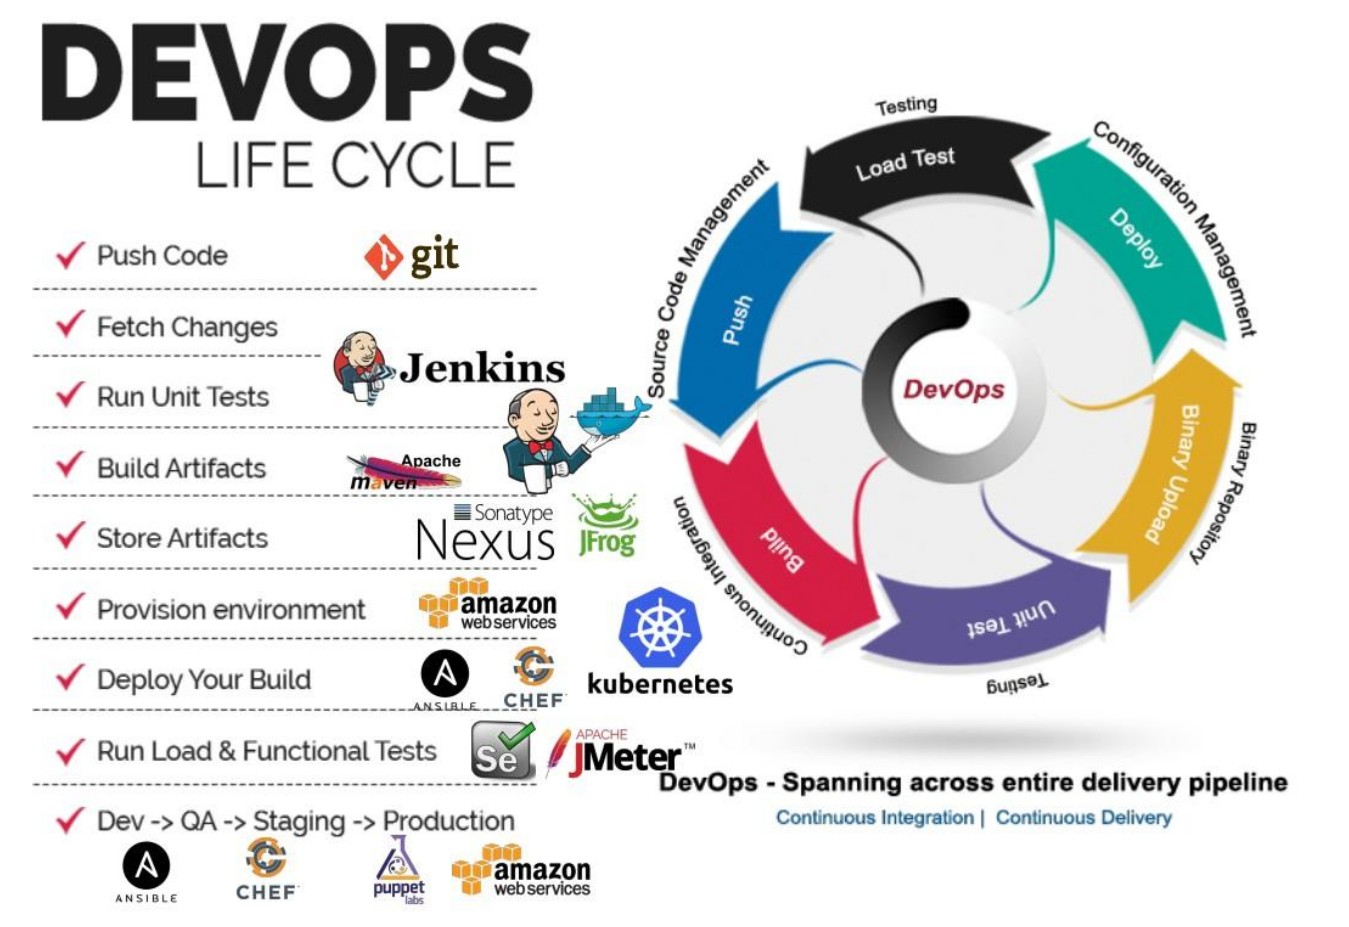 Devops Life cycle